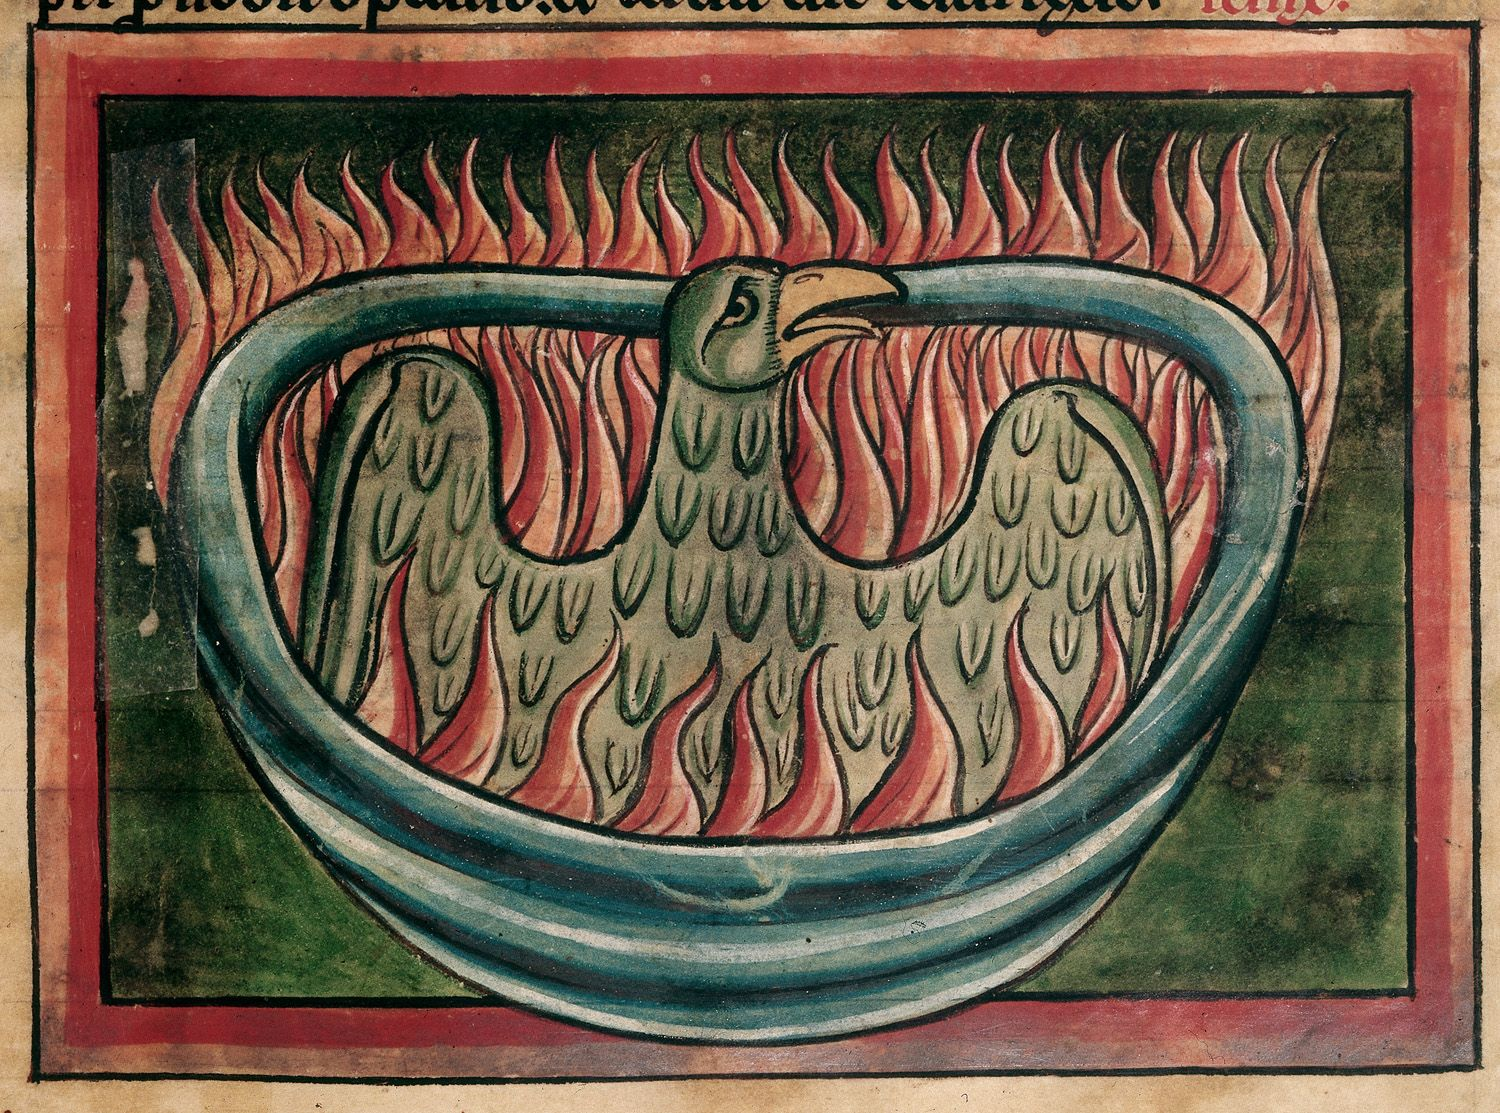 b1beceb9957 DETAIL - A phoenix rising from the ashes in a 13th-century bestiary (c)  British Library